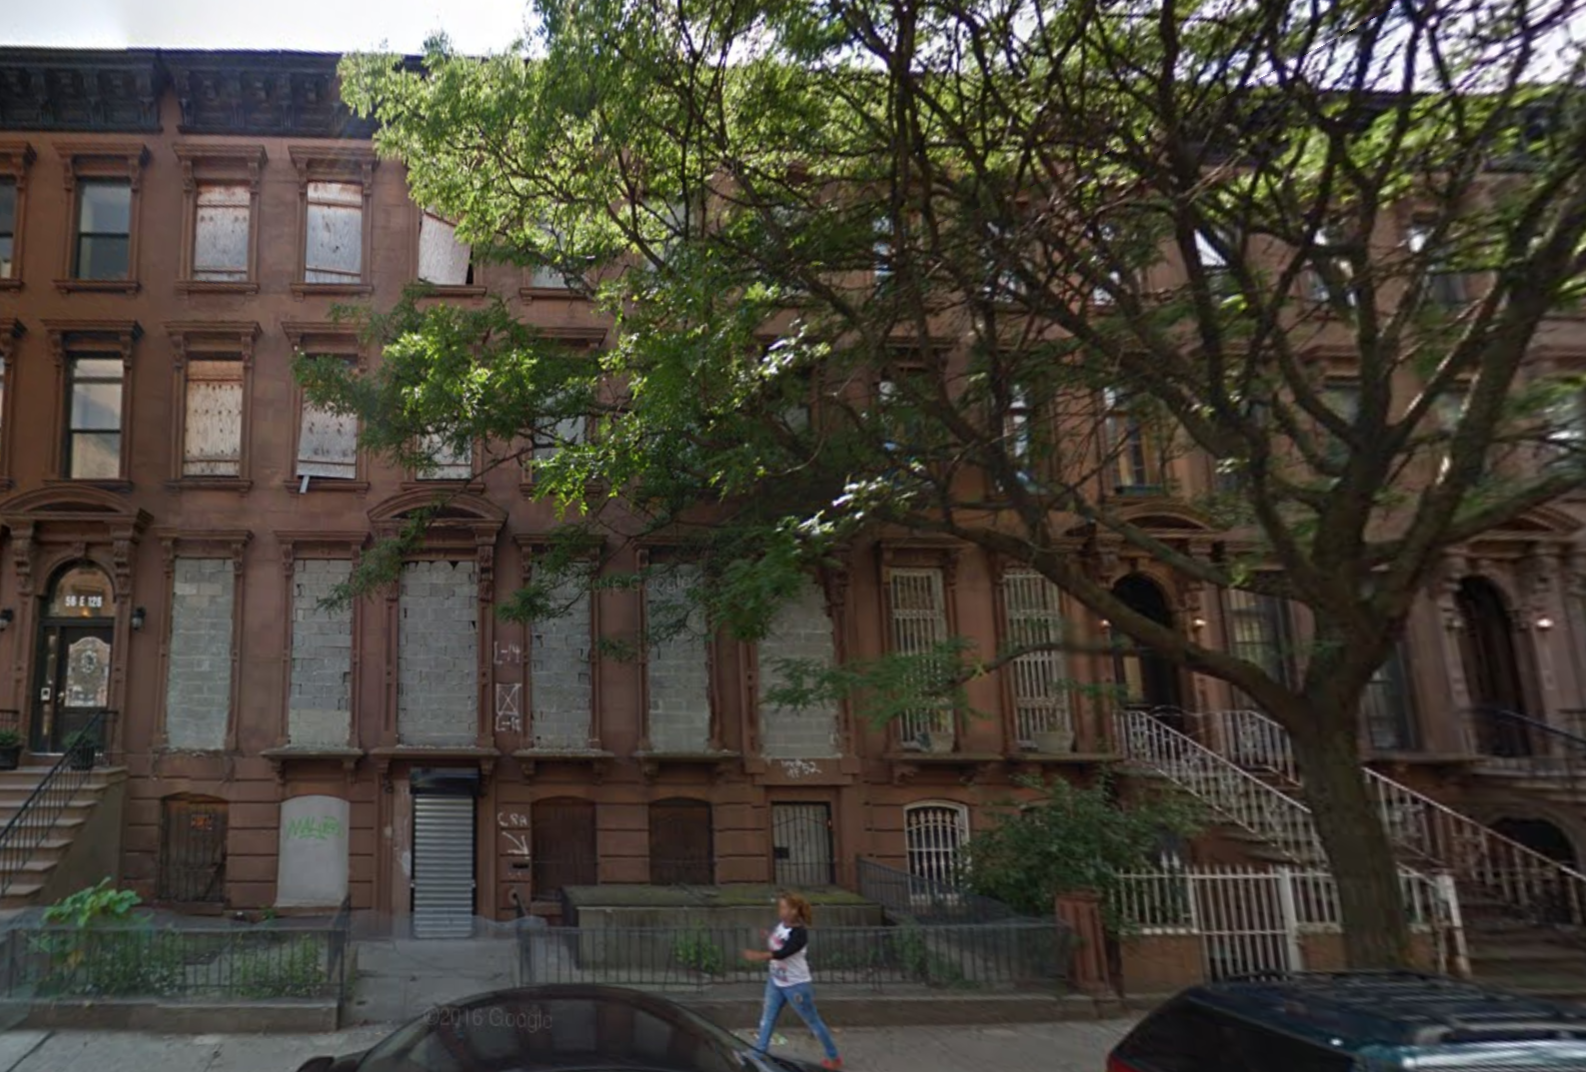 52-54 East 126th Street, image via Google Maps